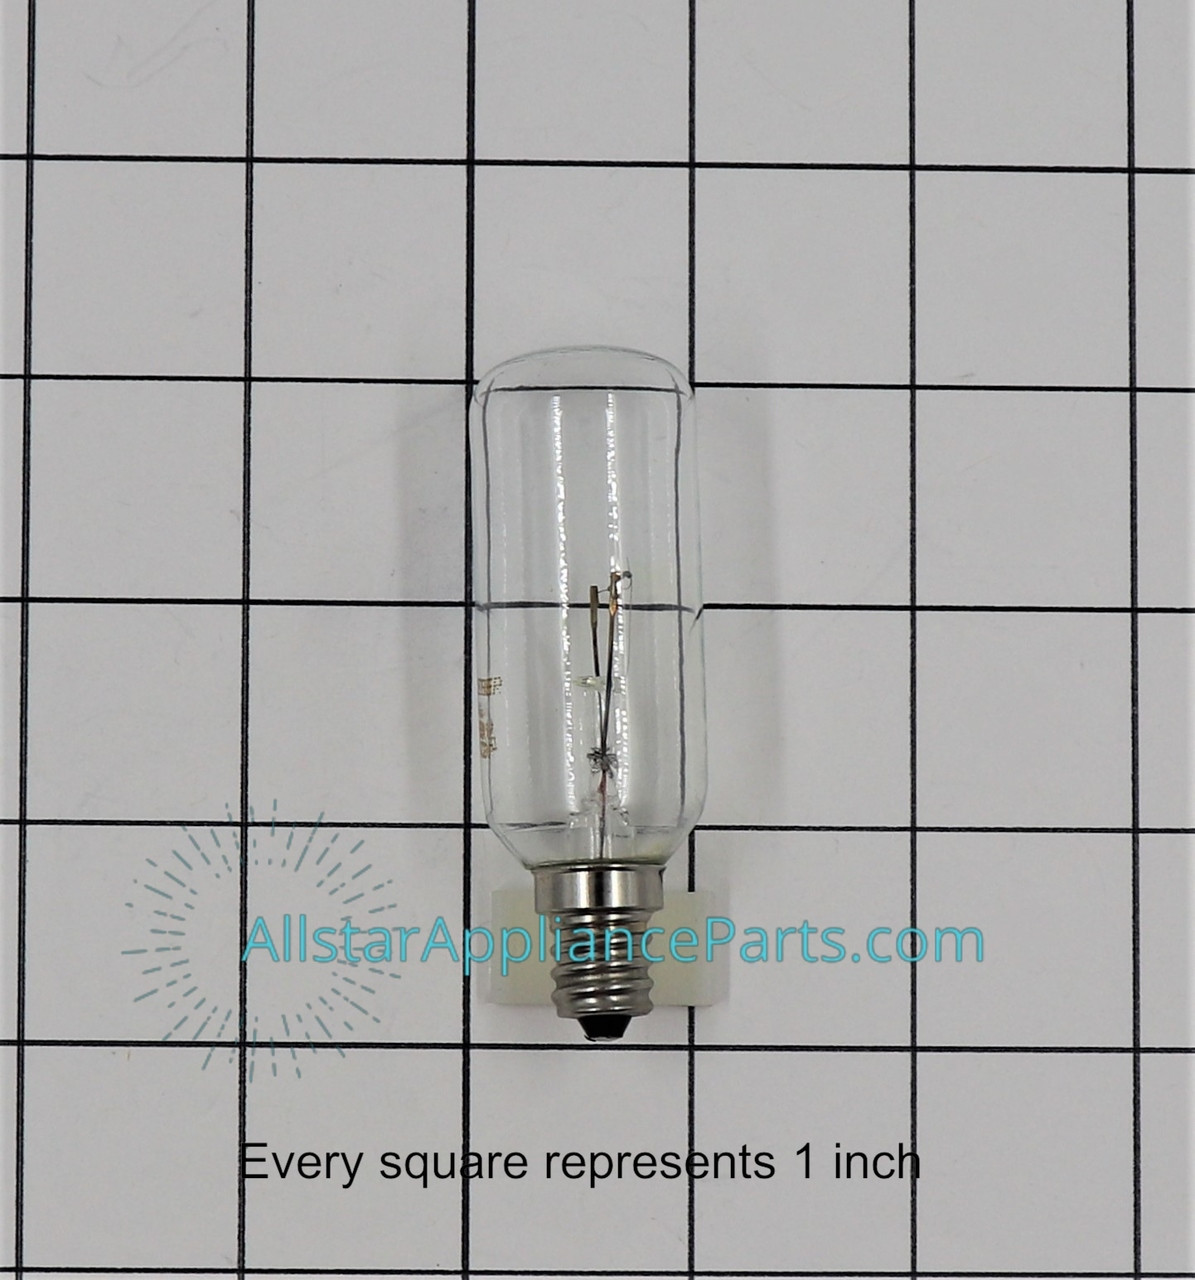 UAP WP8190806 8190806 Range Hood Bulb-Light replacement for Whirlpool WP8190806